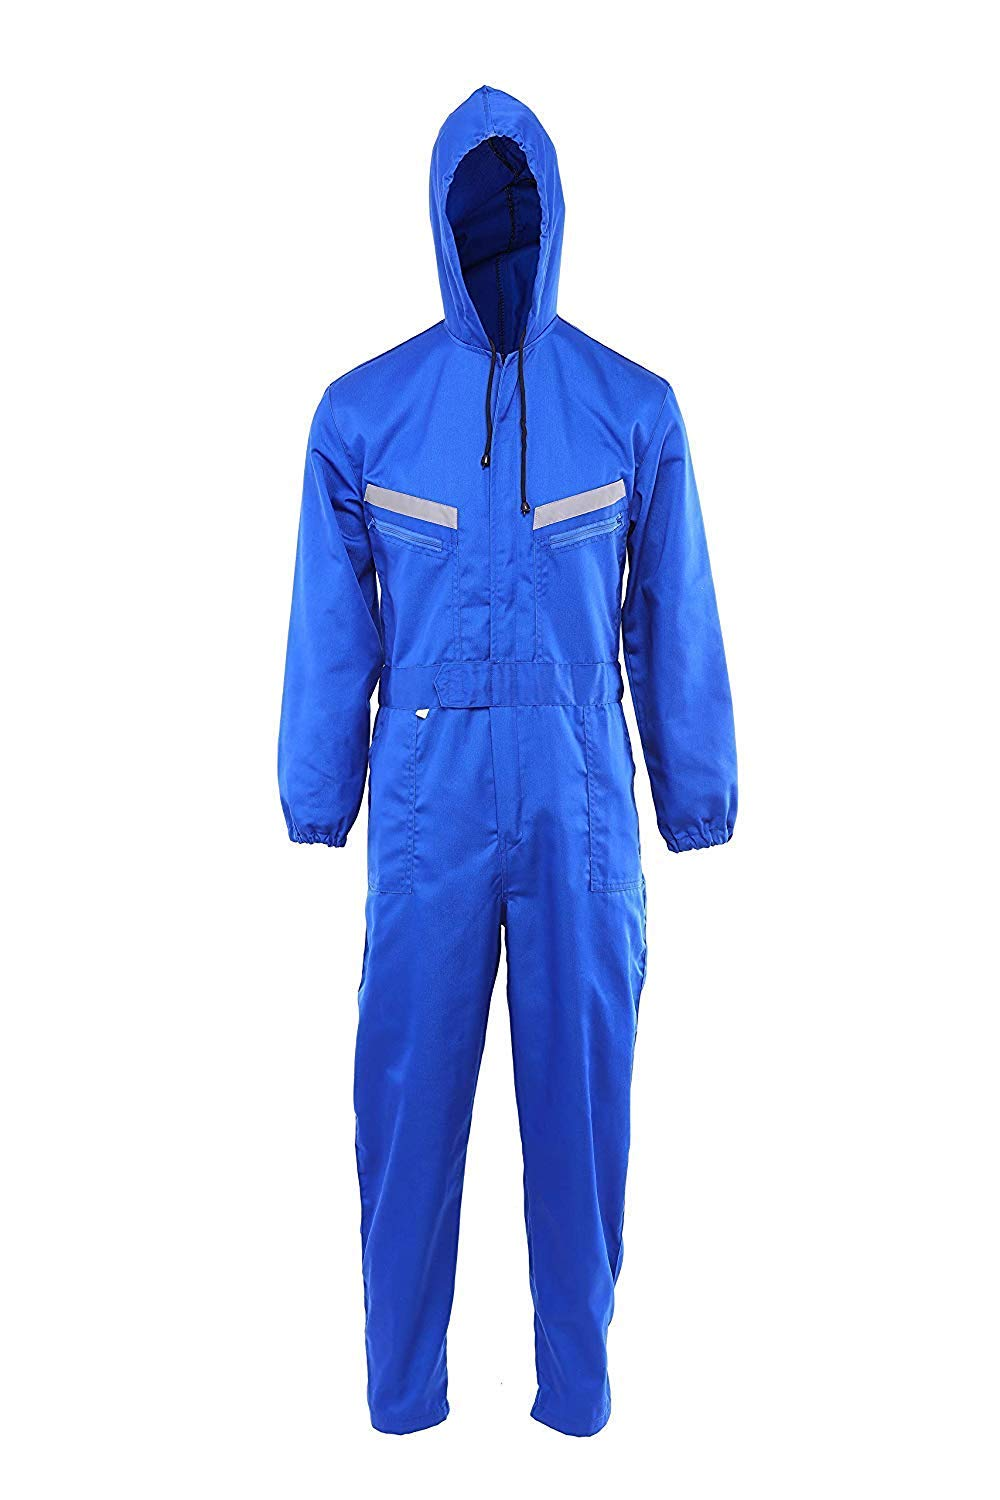 Boolee Women's Hoodies Work Coverall Visibility Long Sleeve